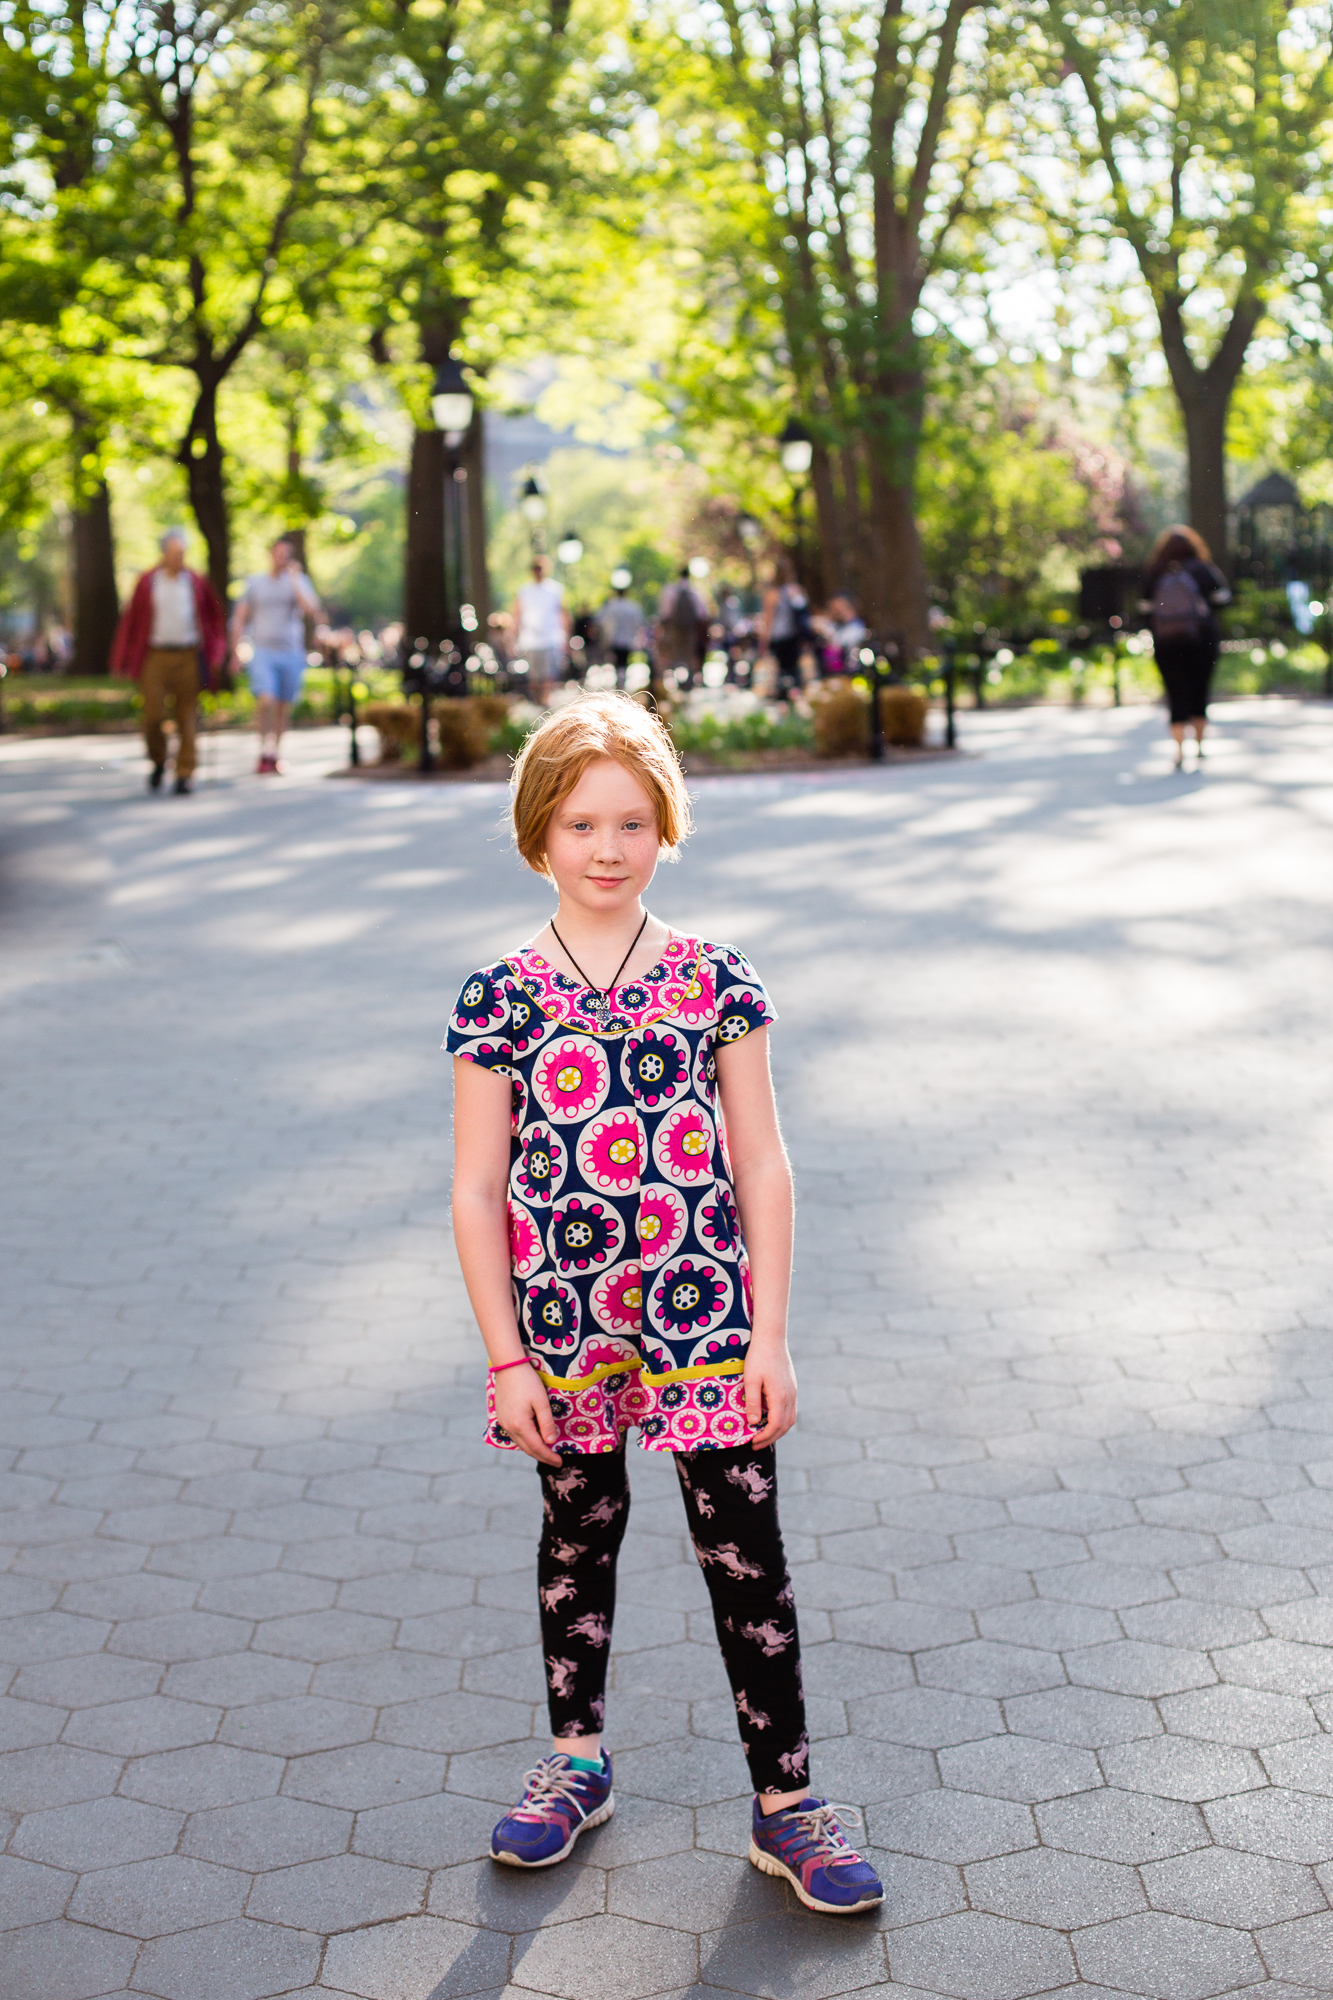 We headed down to Washington Square Park so I could show her where I went to college. There w